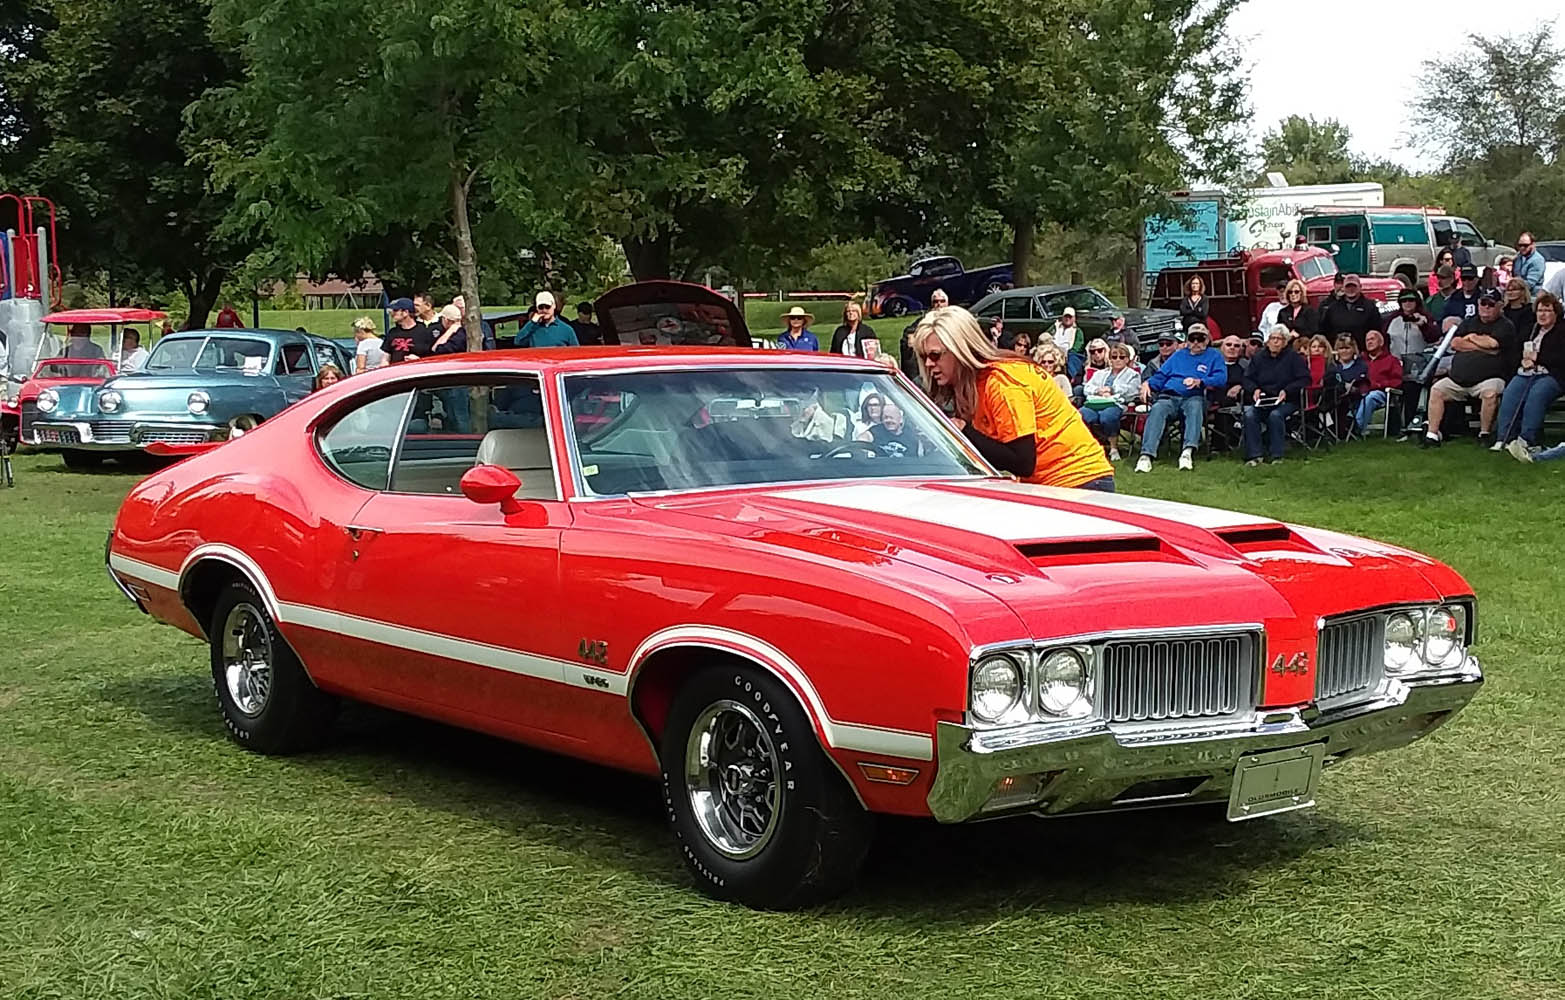 Top 25- 1970 Olds 442 W30, Brian Henderson 1